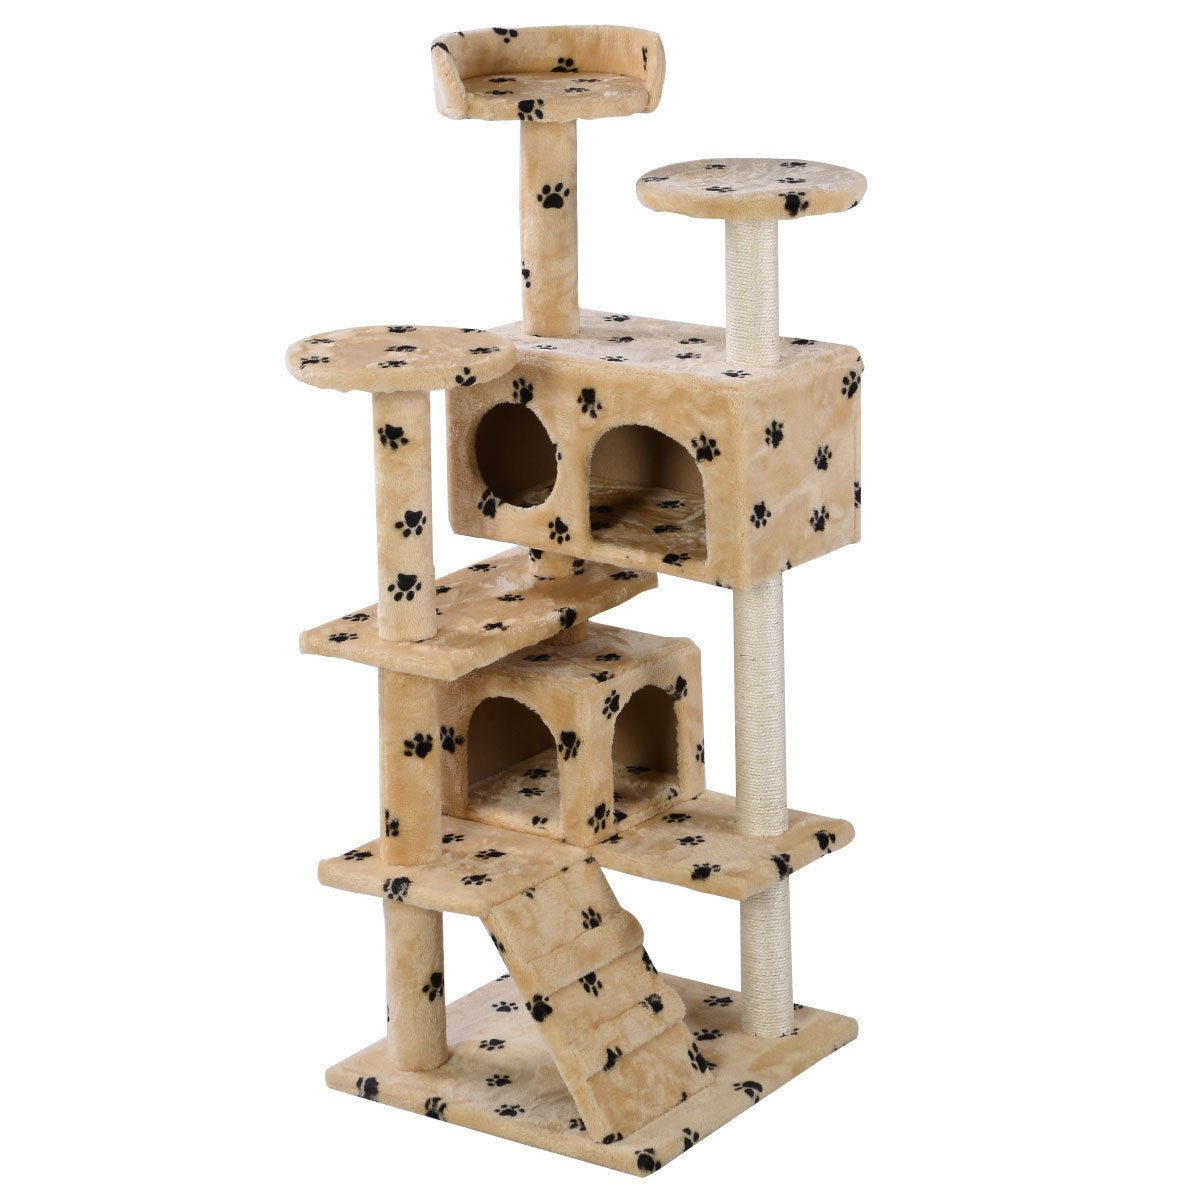 Eight24hours New Cat Tree Tower Condo Furniture Scratch Post Kitty Pet House Play Beige Paws + FREE E-Book